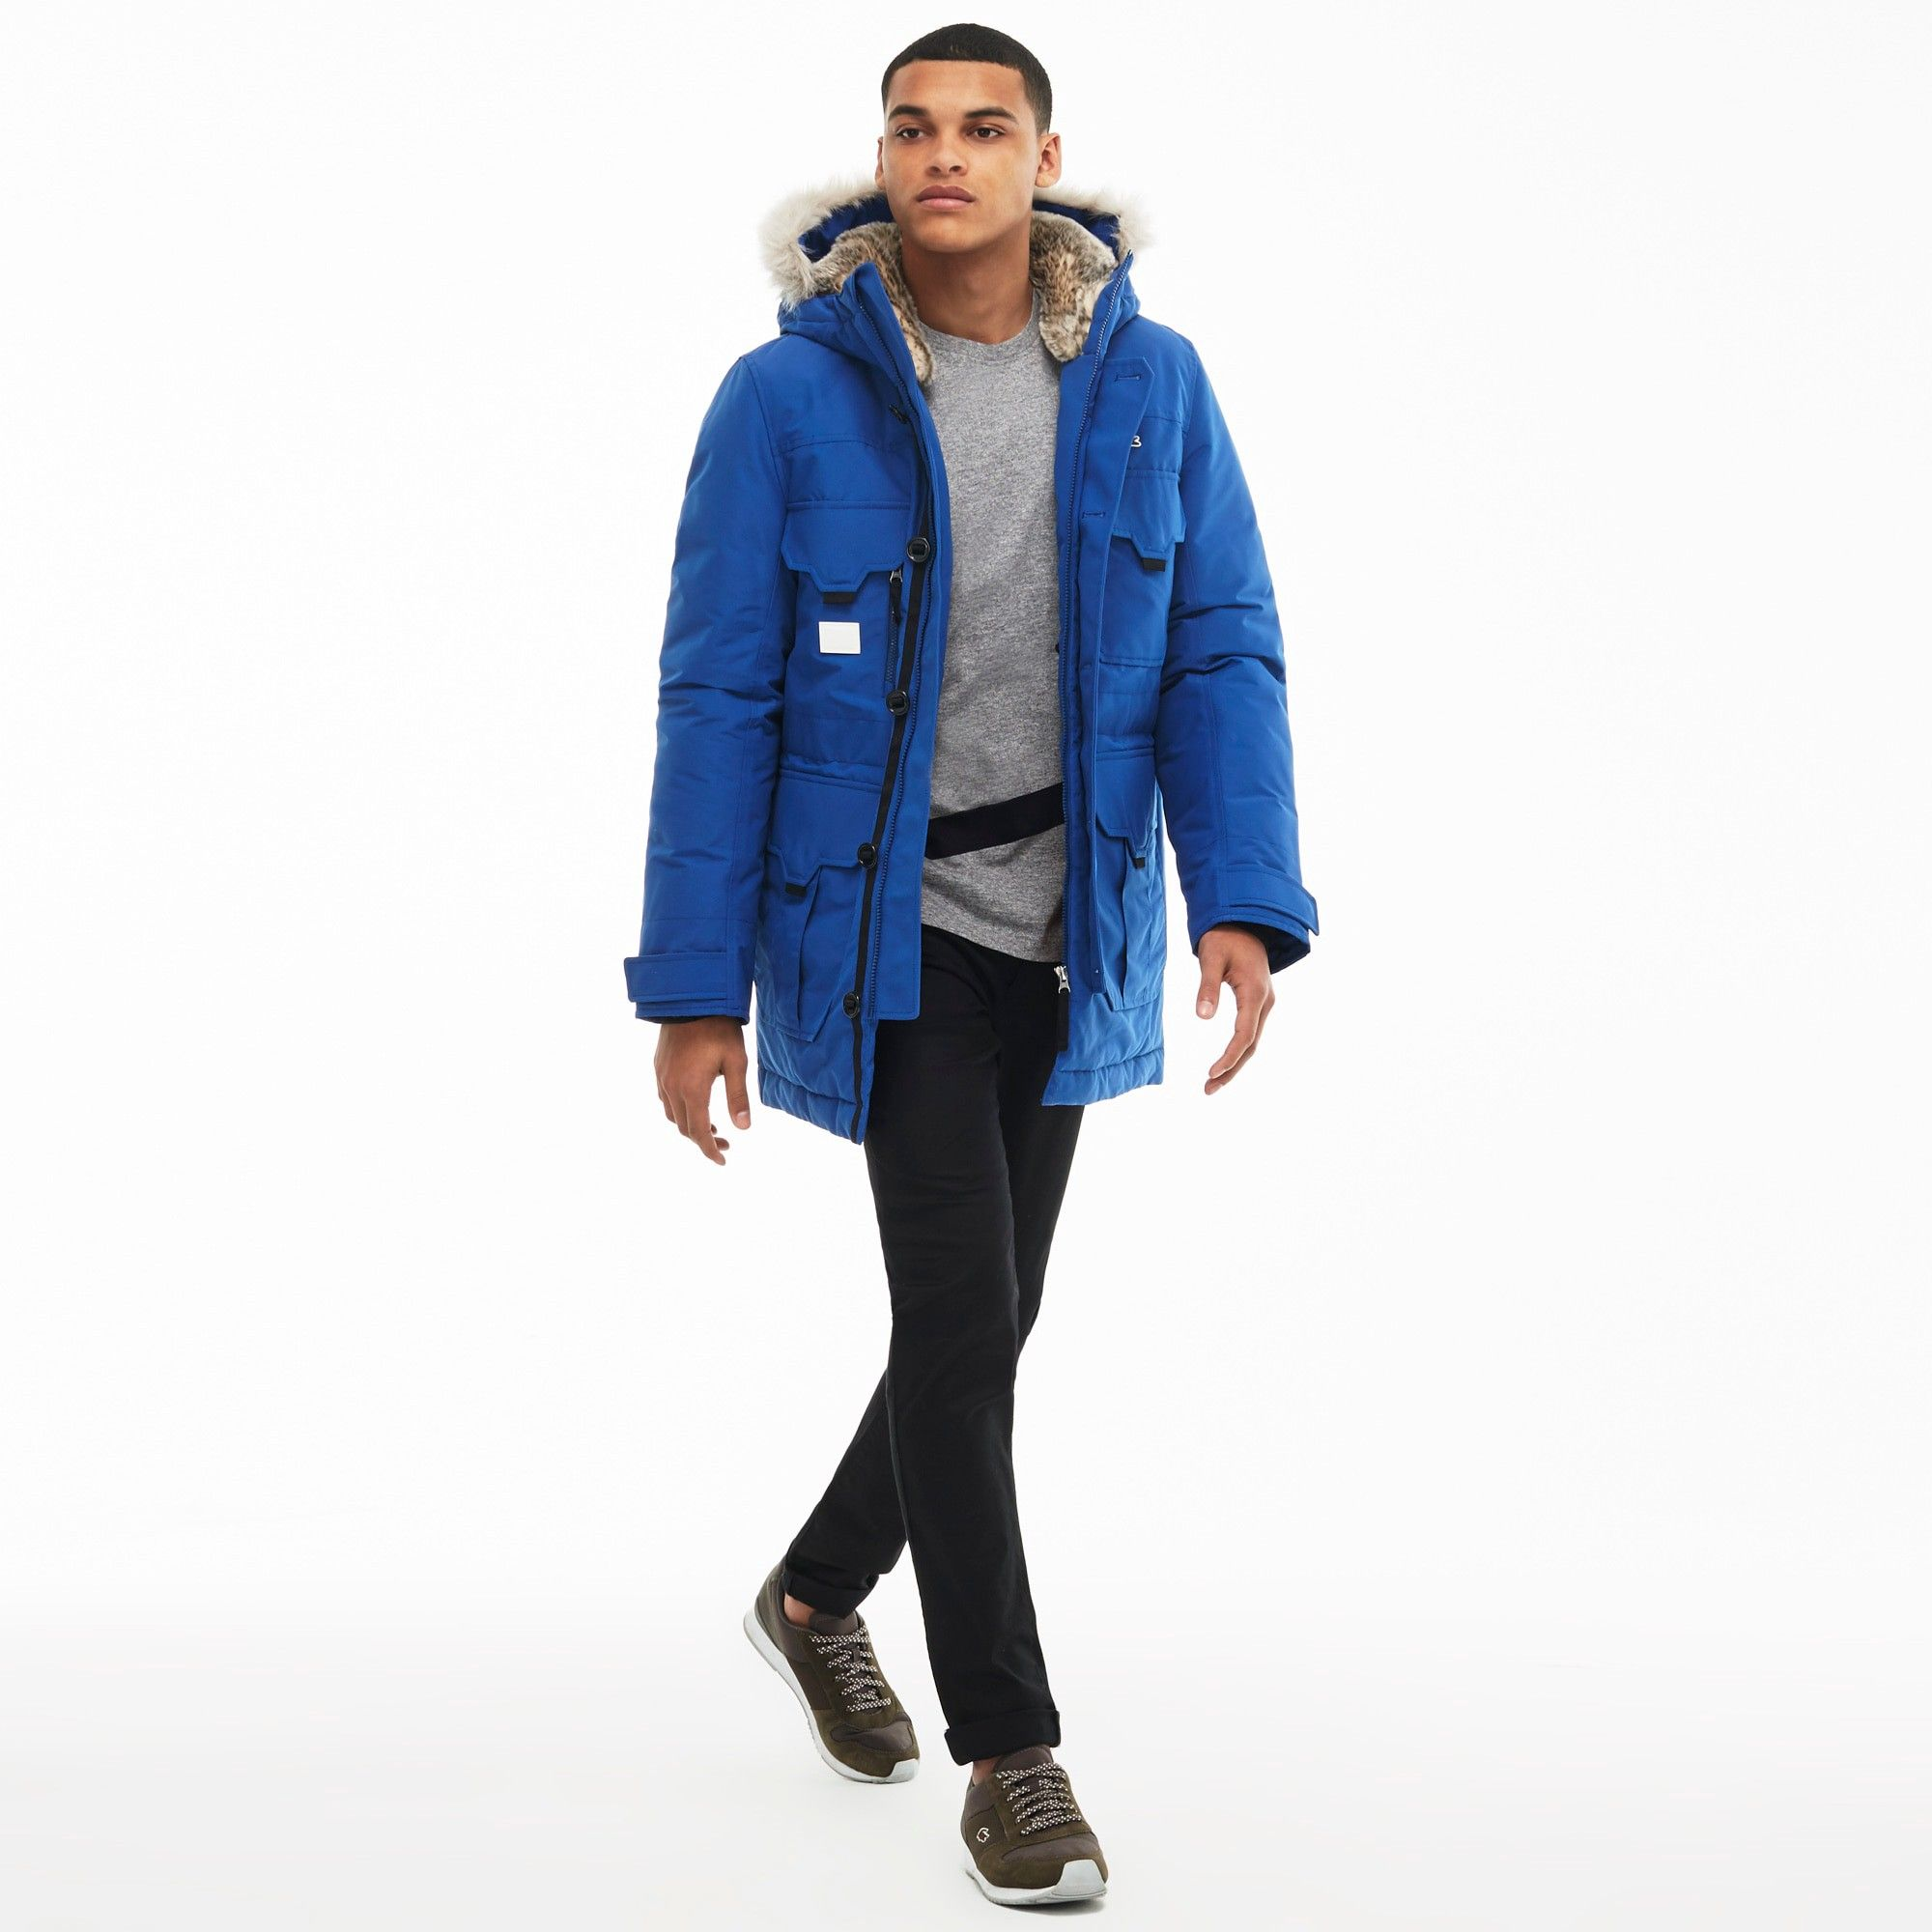 LACOSTE Unisex Lacoste LIVE Hooded Quilted Parka - STEEL BLUESTEEL BLUE. # lacoste #cloth